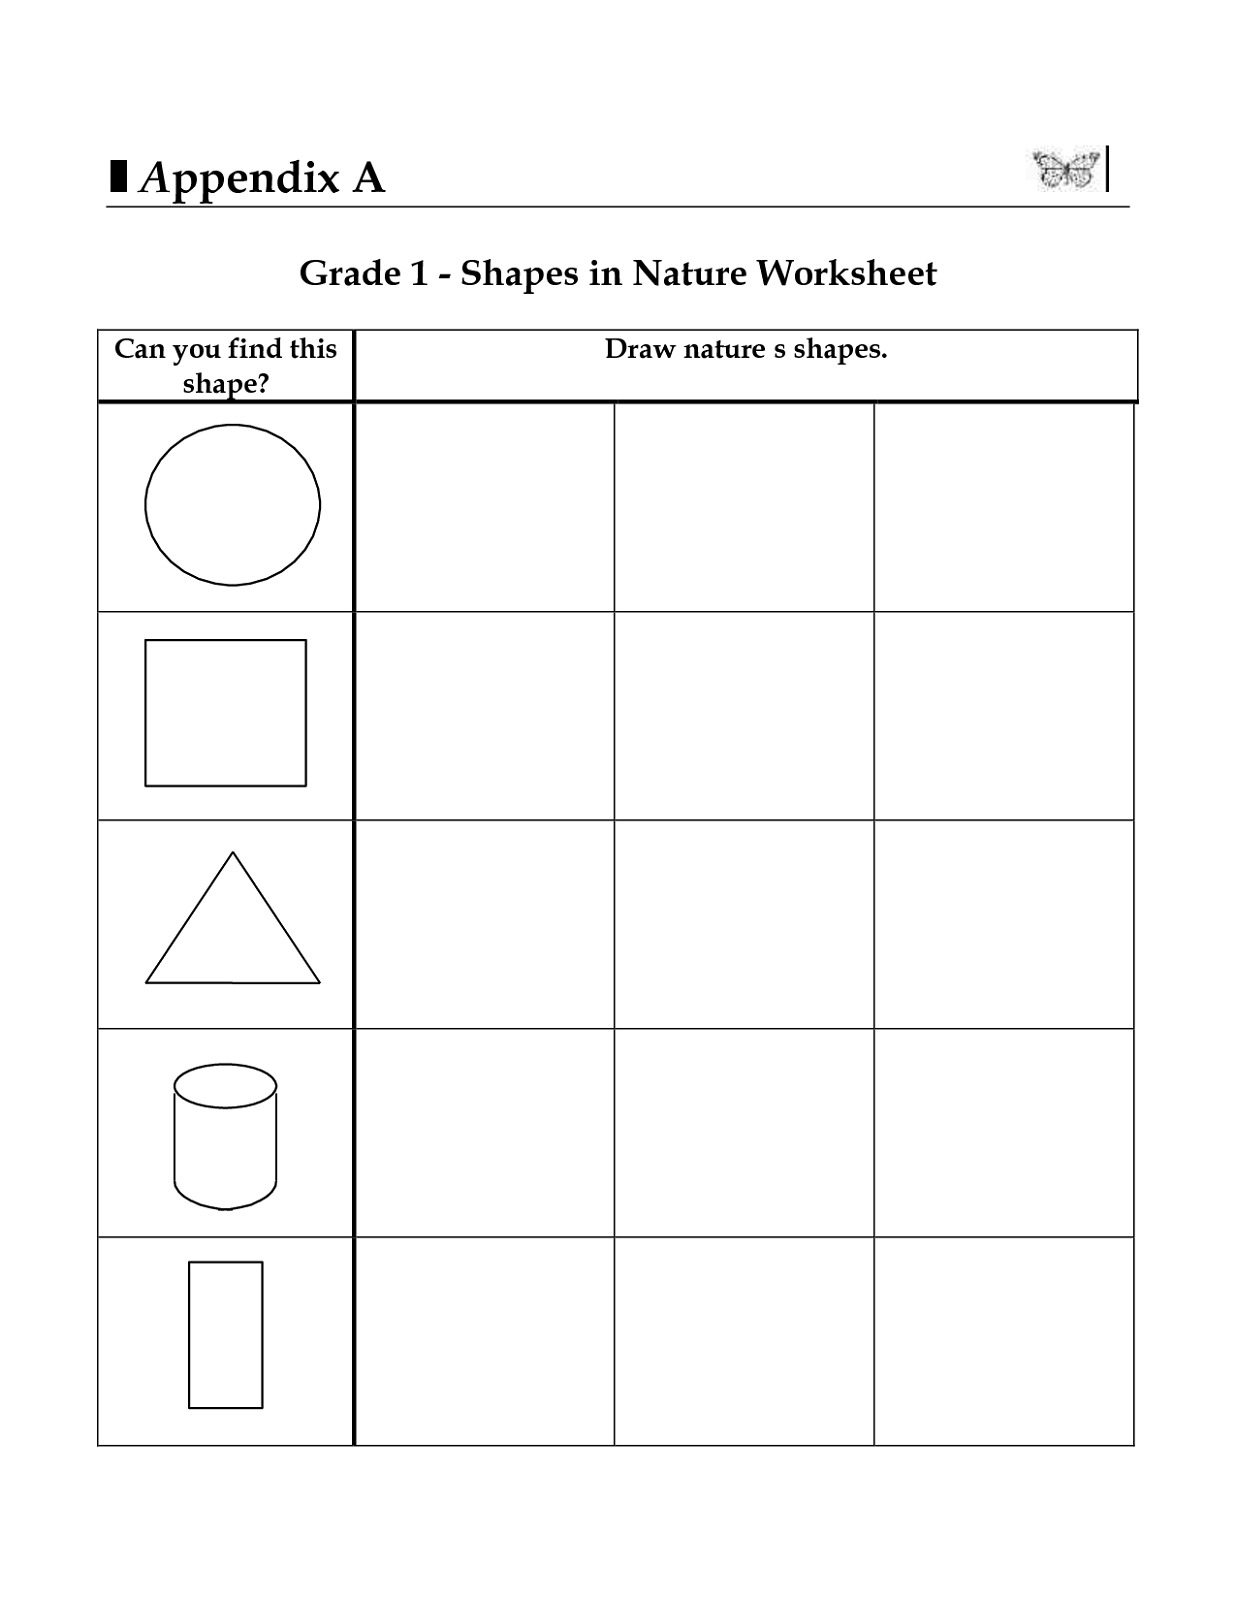 Grade 1 Worksheets : Grade worksheets for learning activity shelter